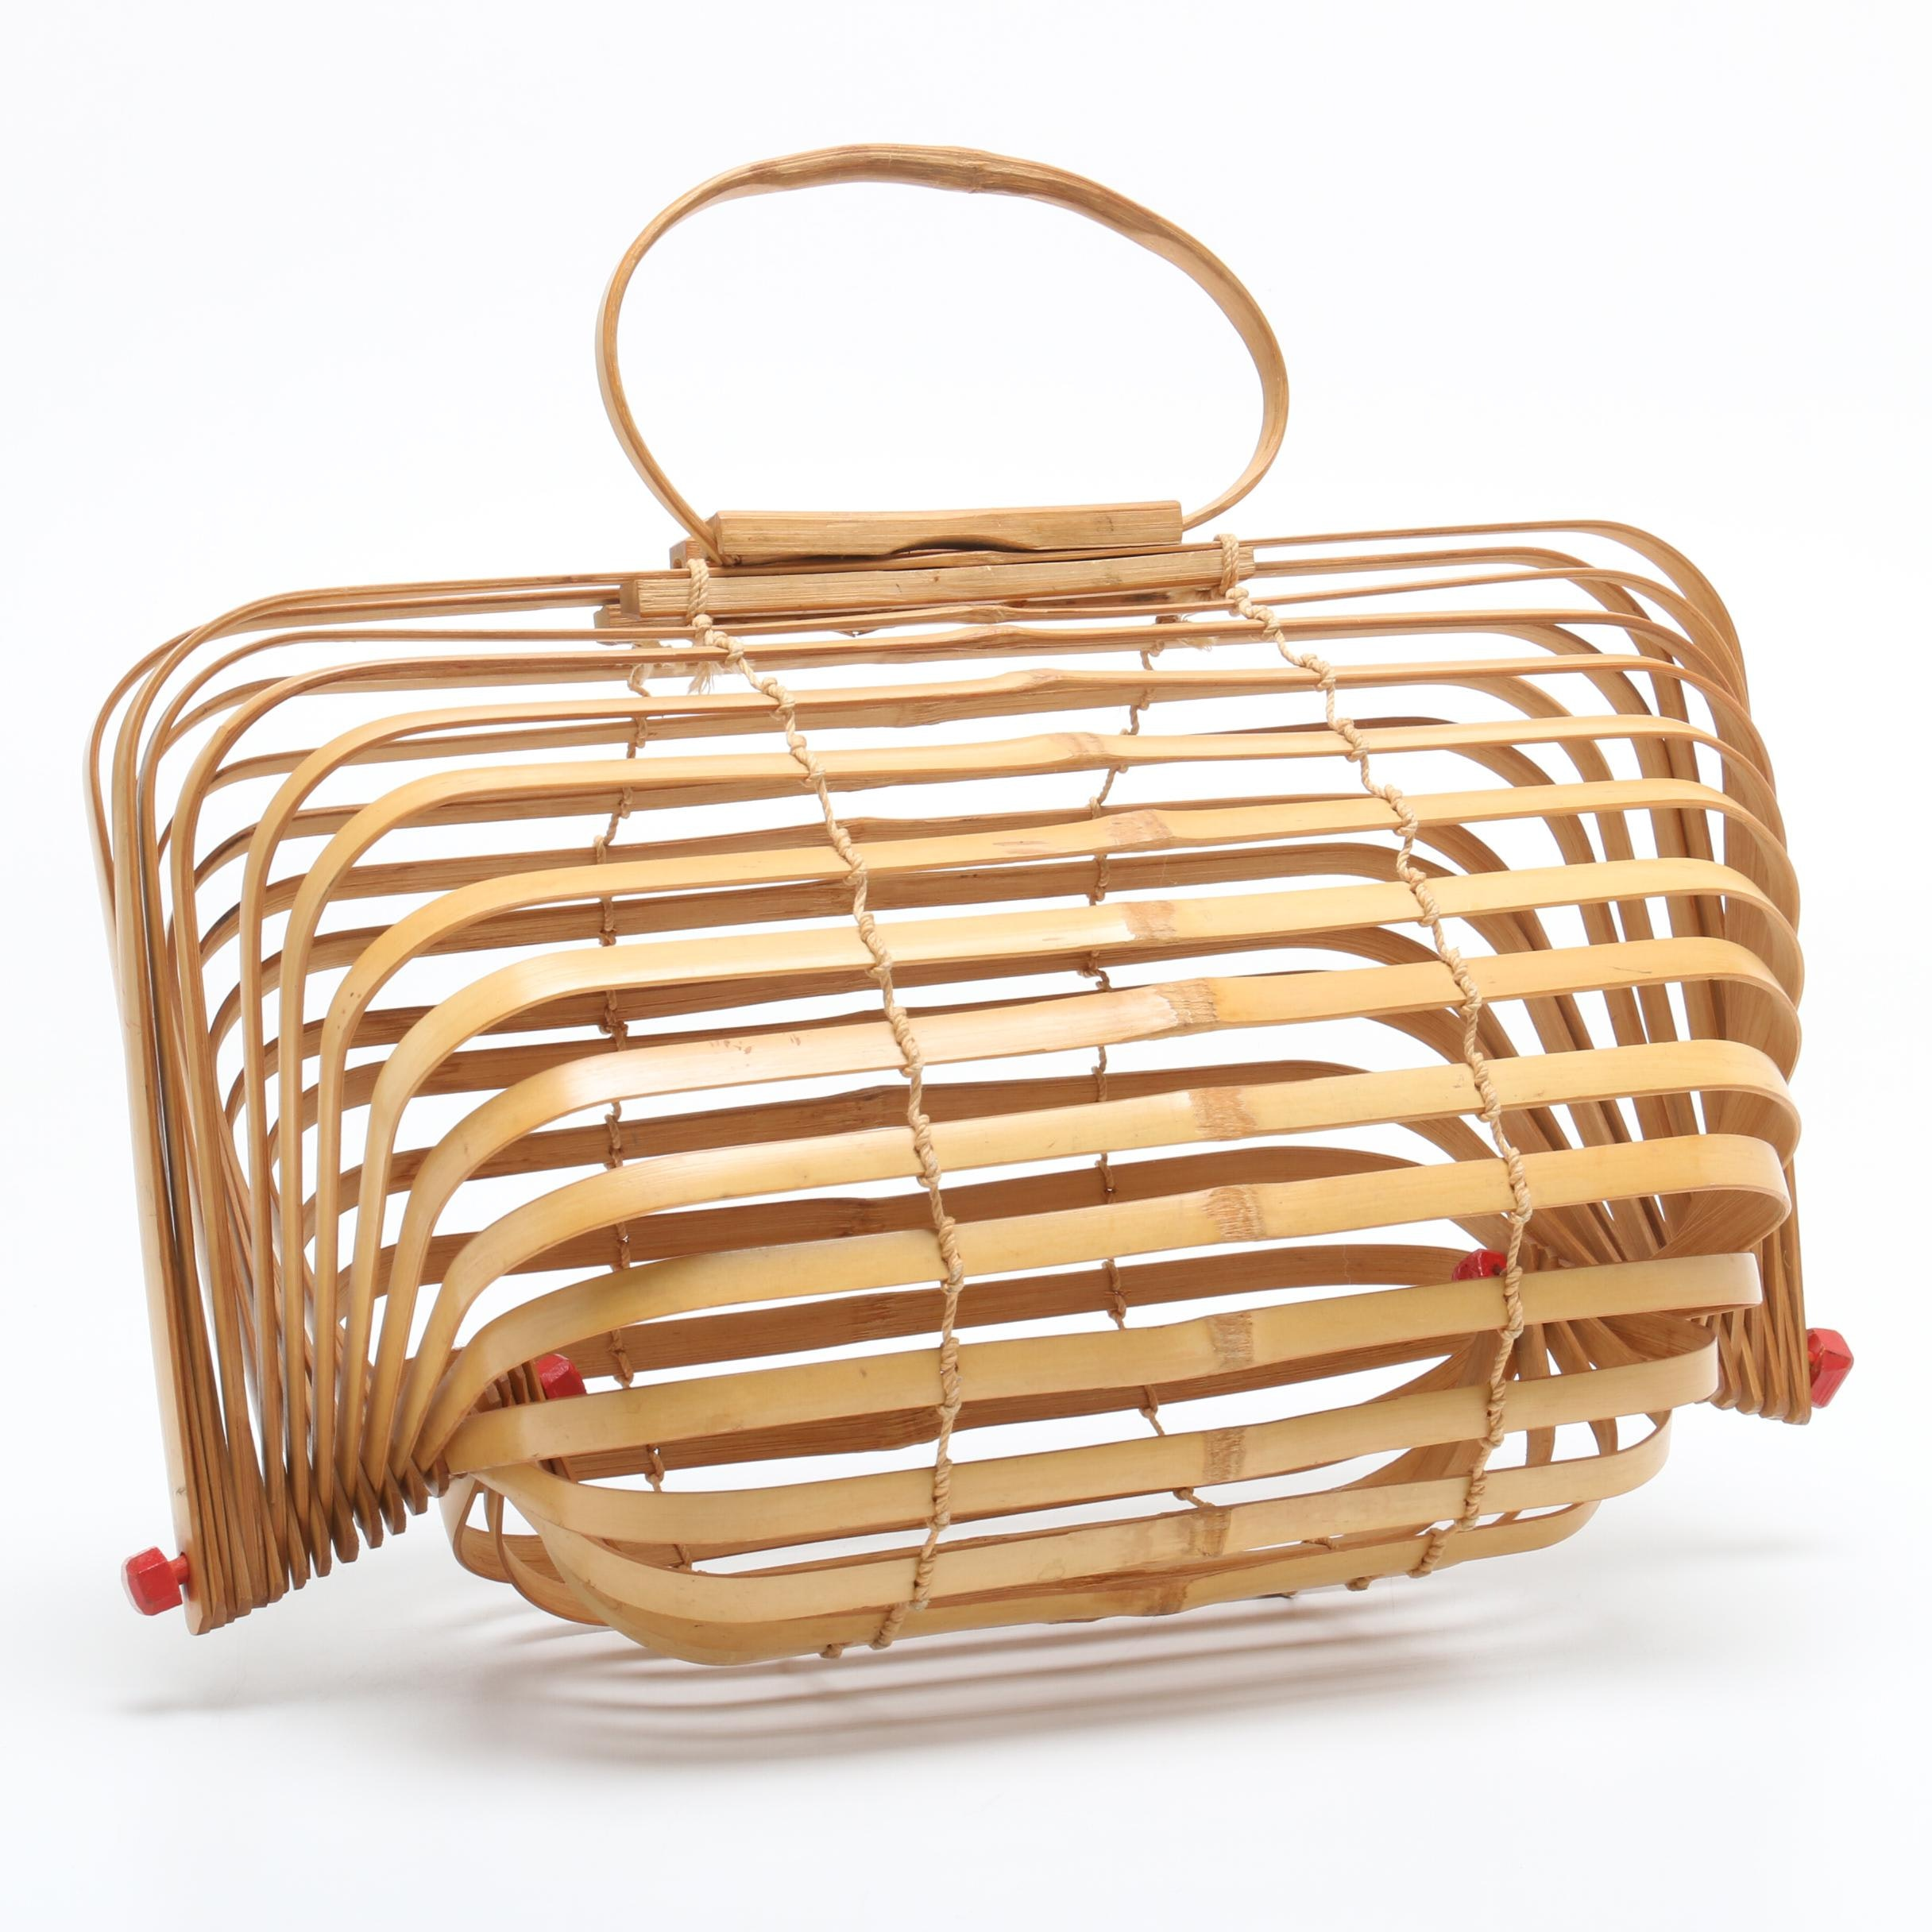 Mid-20th Century Japanese Bamboo Reed Folding Top Handle Bag